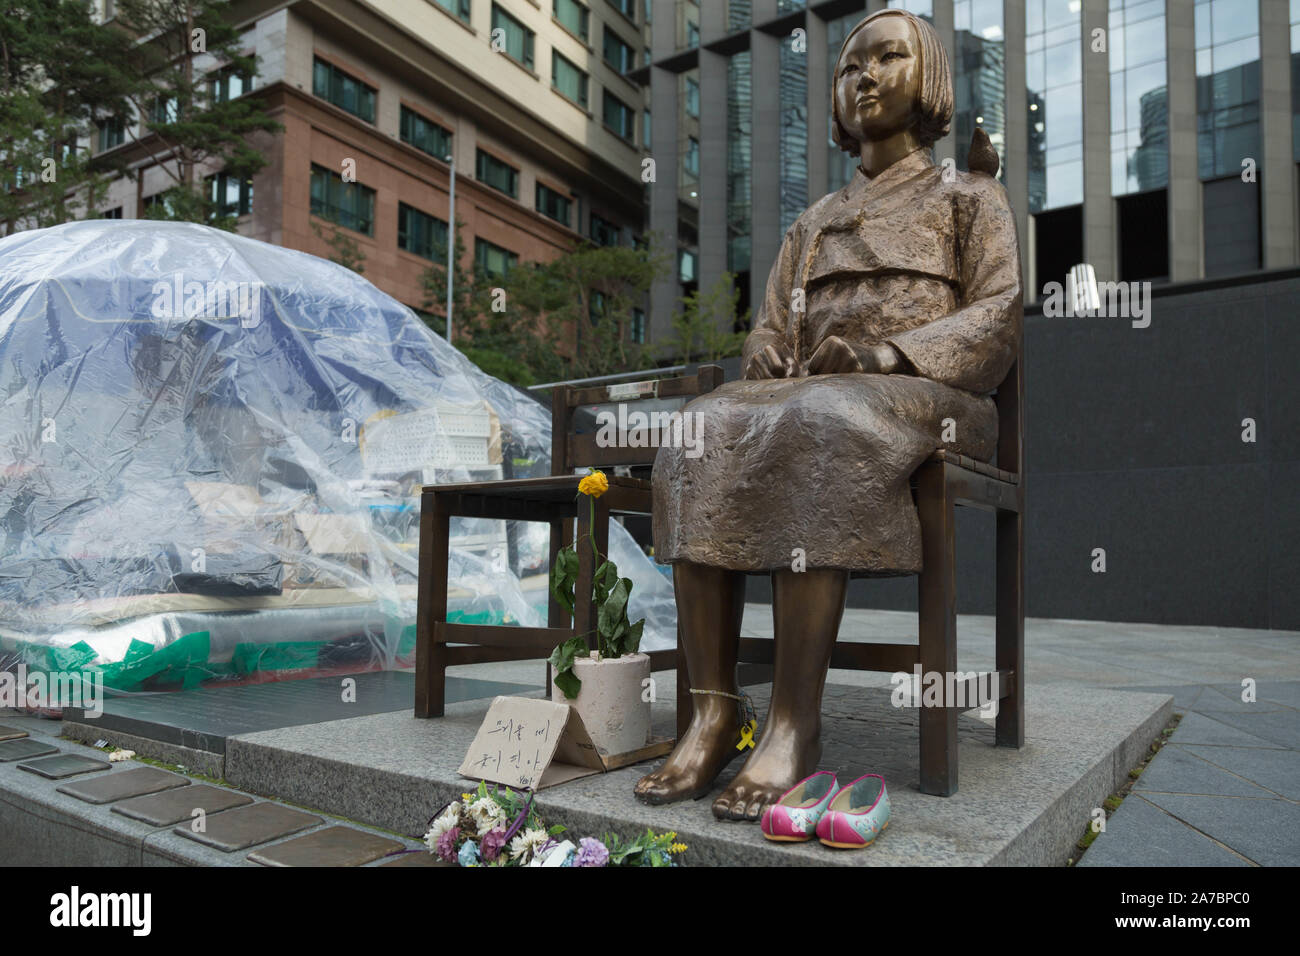 Seoul, South Korea. The Statue of Peace, also called Comfort Woman statue sits facing Japanese Embassy along with make shift camp site by activists. Stock Photo